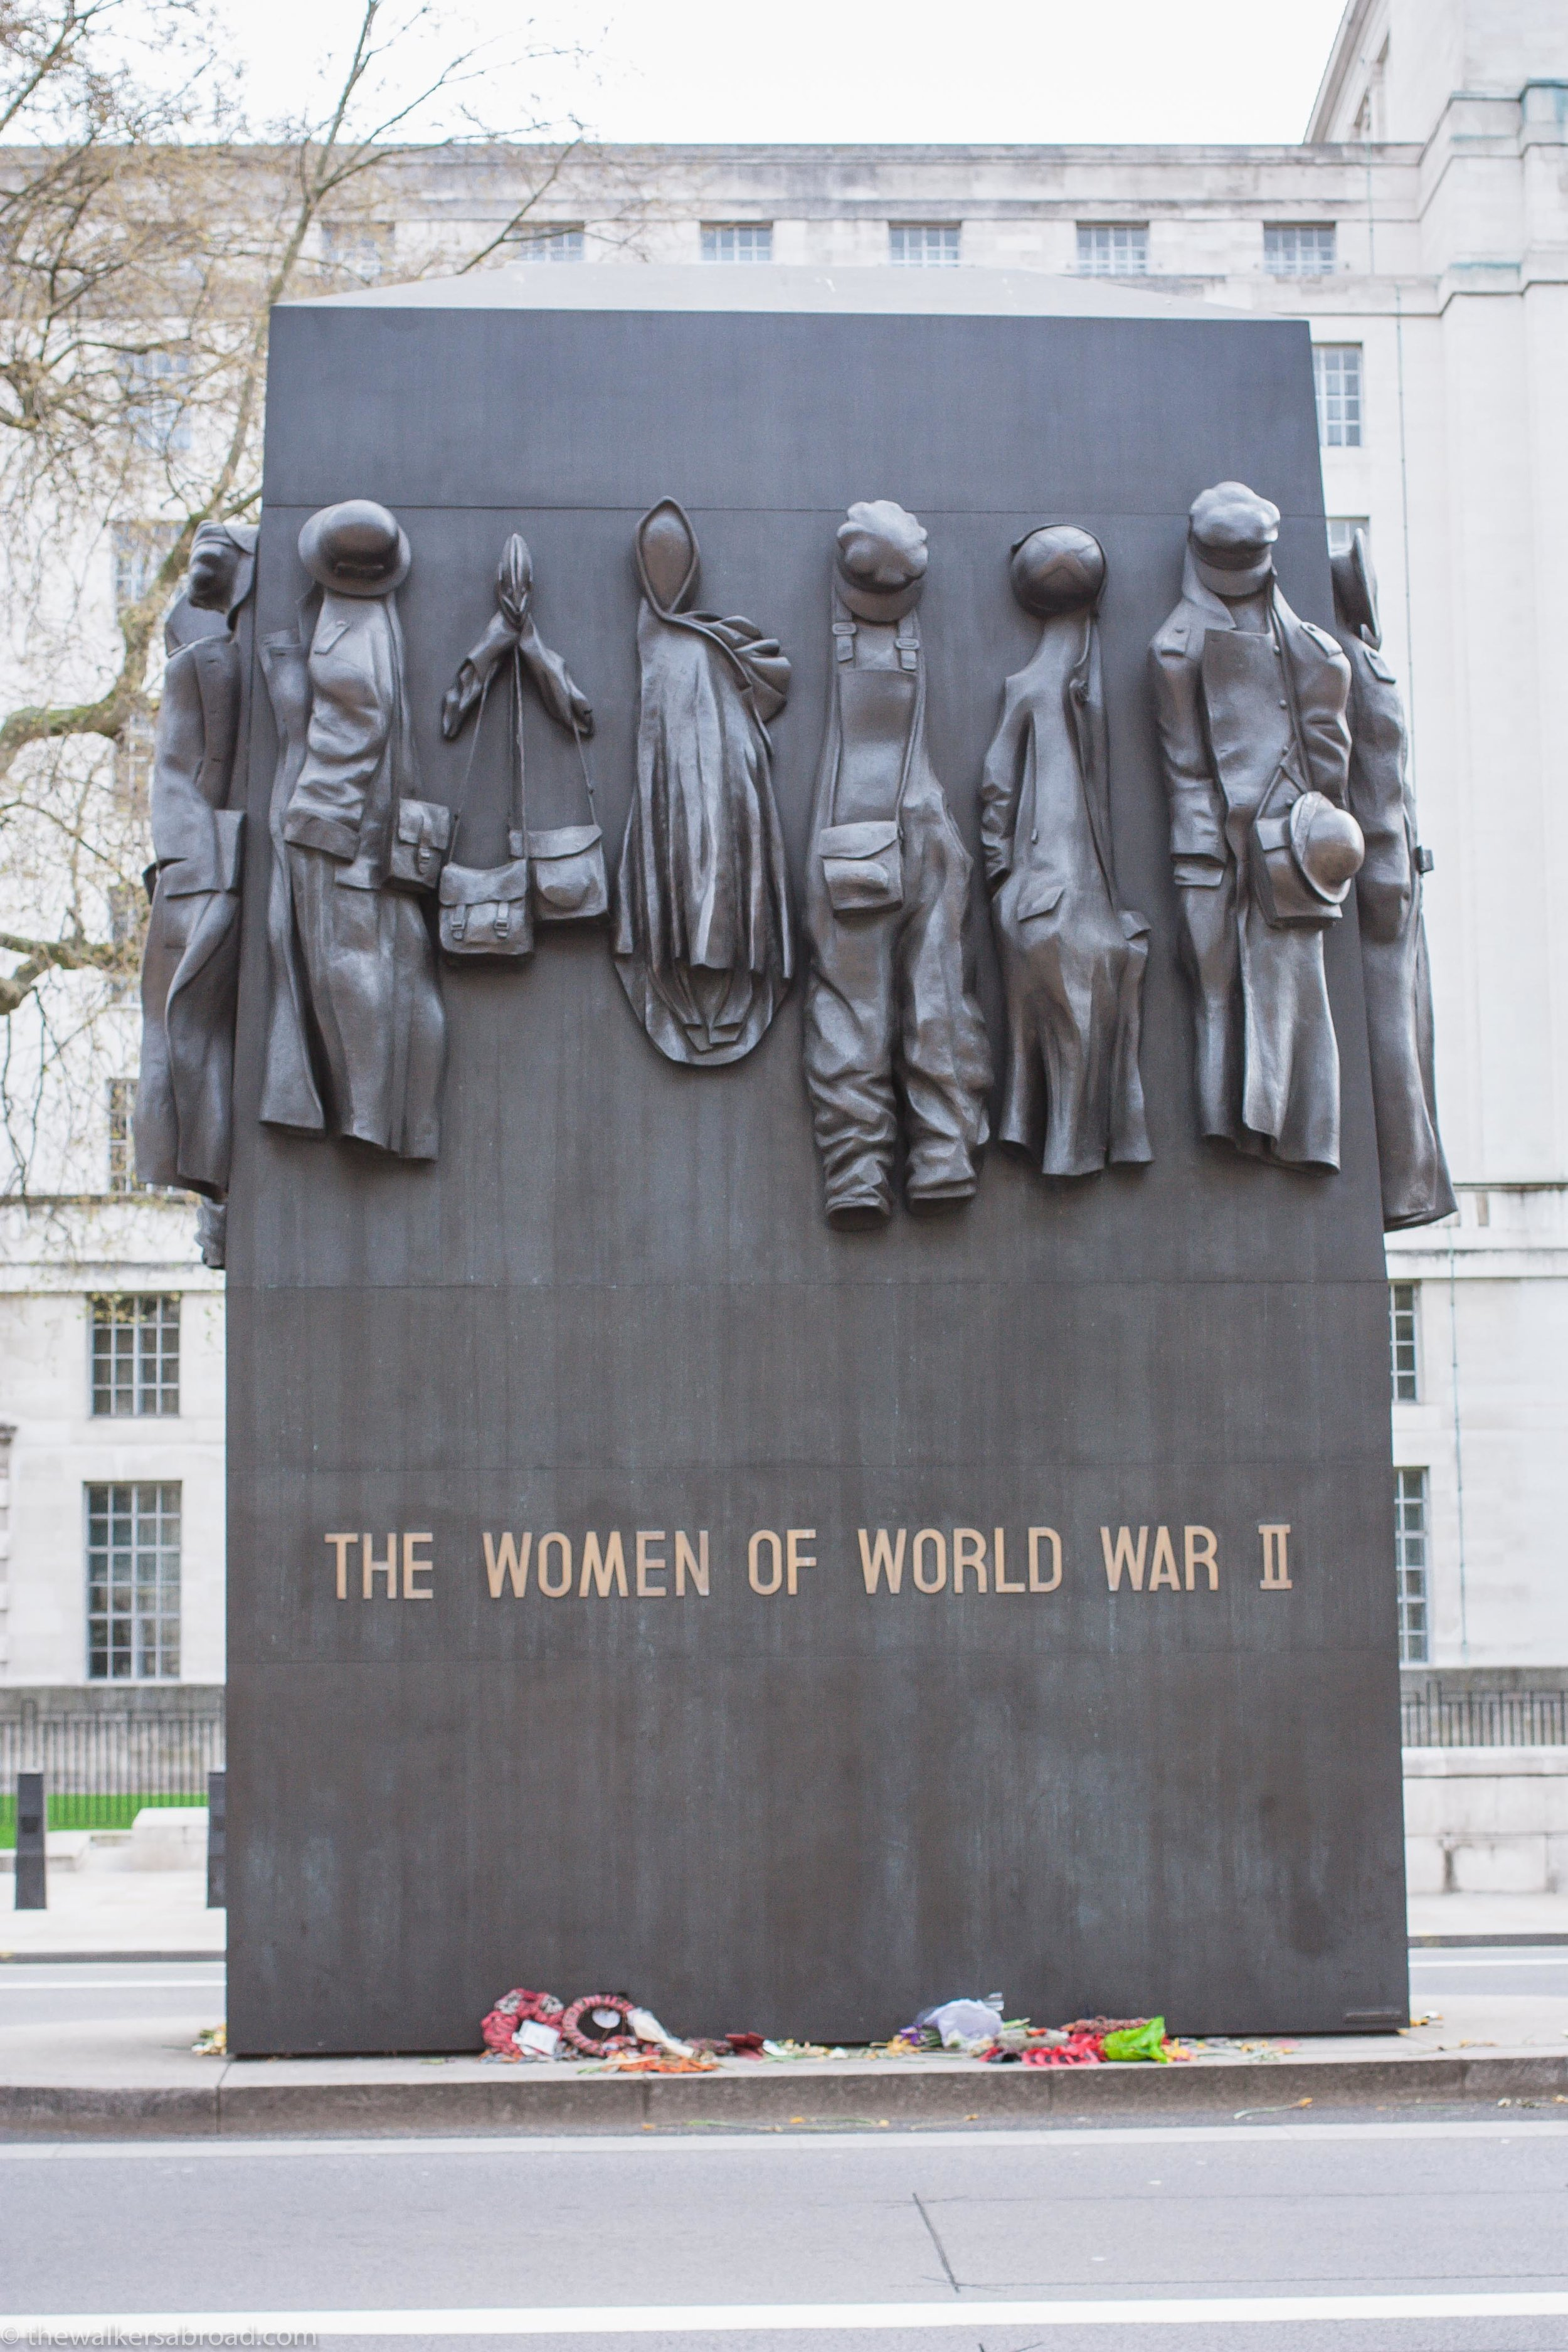 I thought this was such a beautiful tribute to the women of WW2.